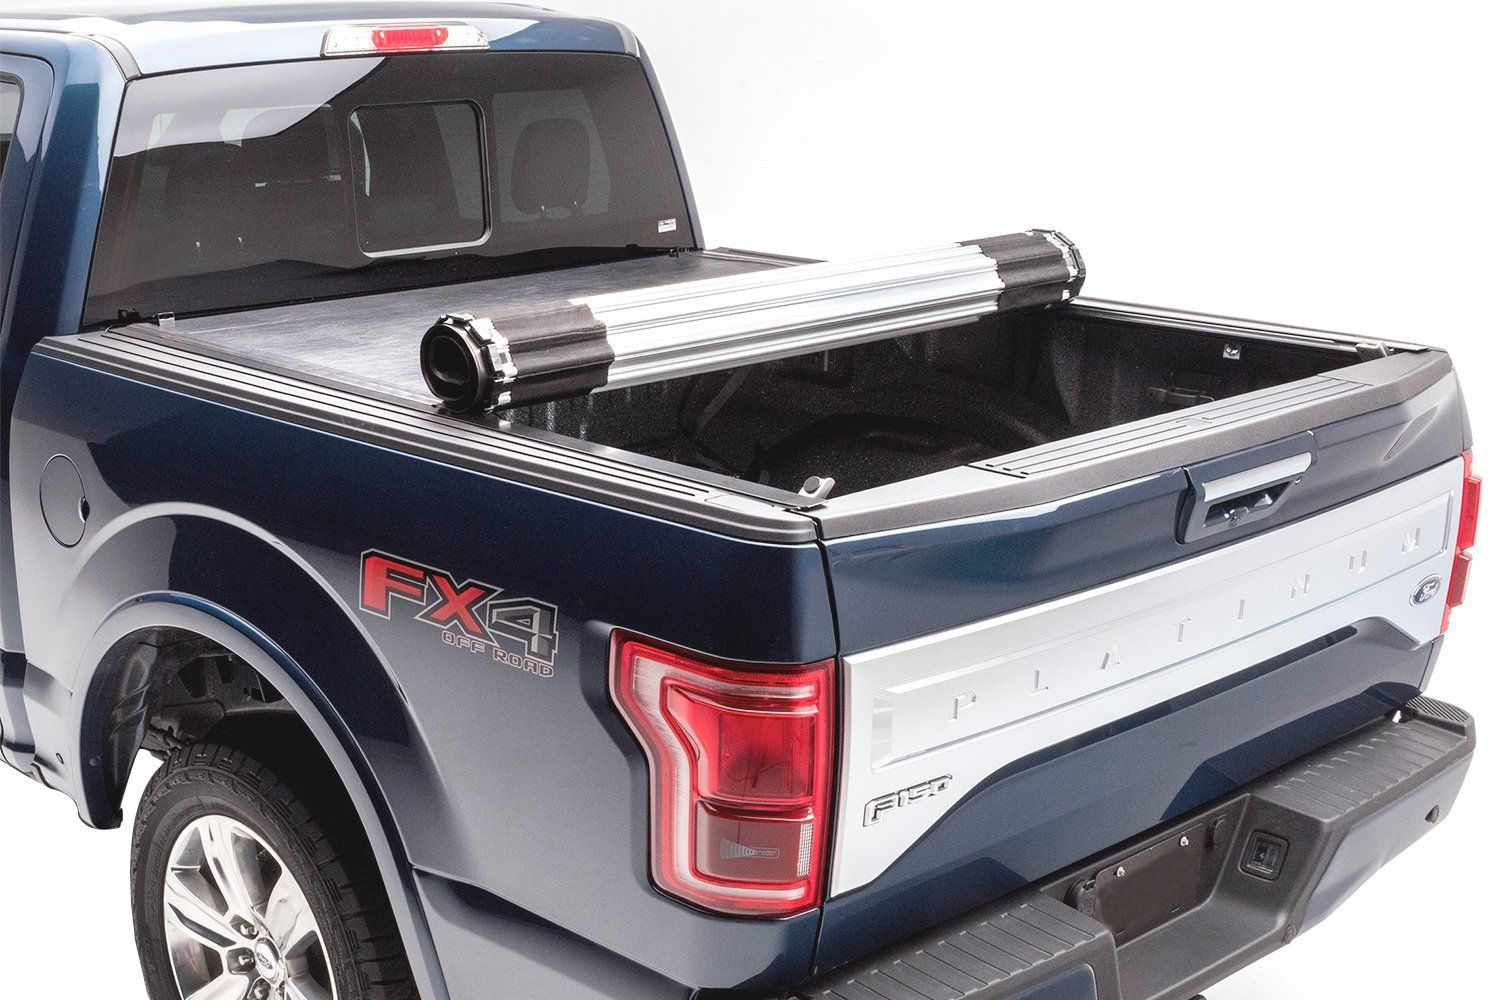 Roll Up Truck Bed Cover Truck Bed Covers Truck Accessories Ford Tonneau Cover